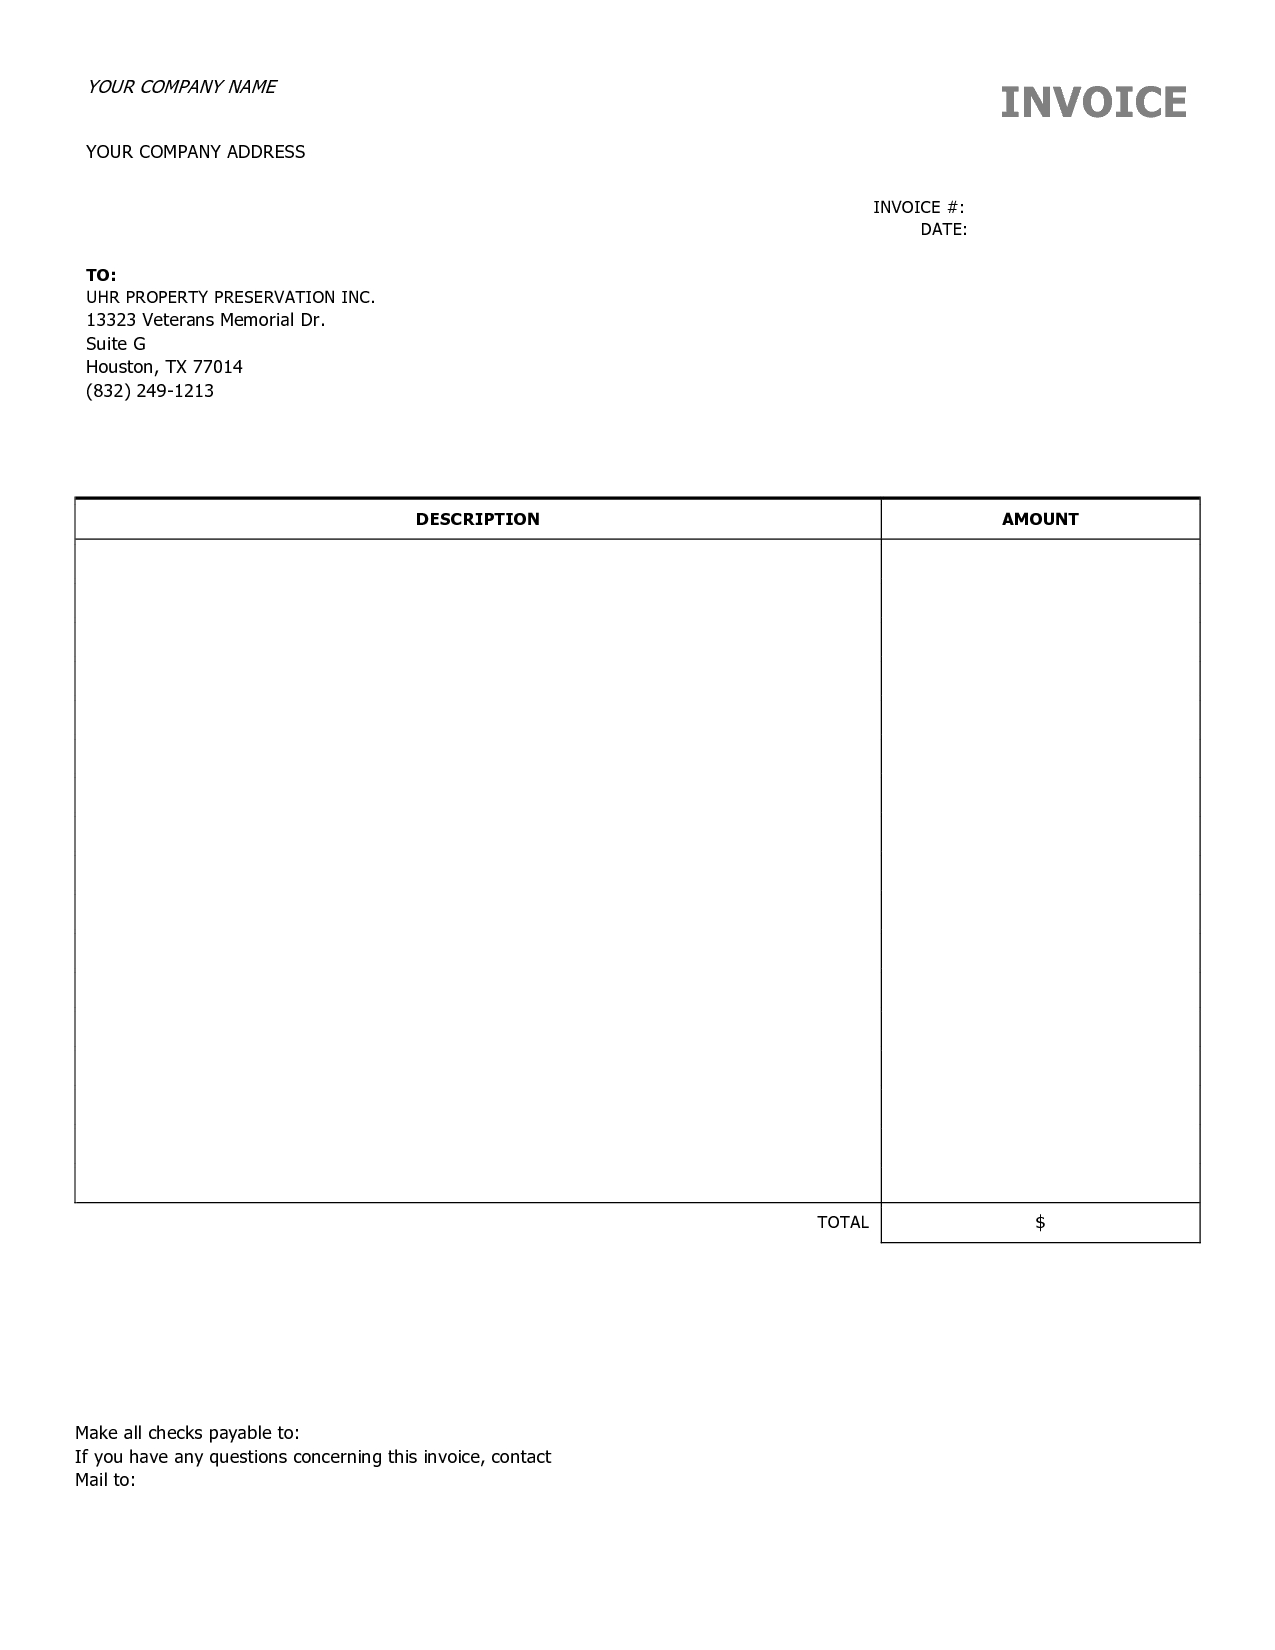 free construction invoice template 15 best photos of free construction invoice template downloads 1275 X 1650